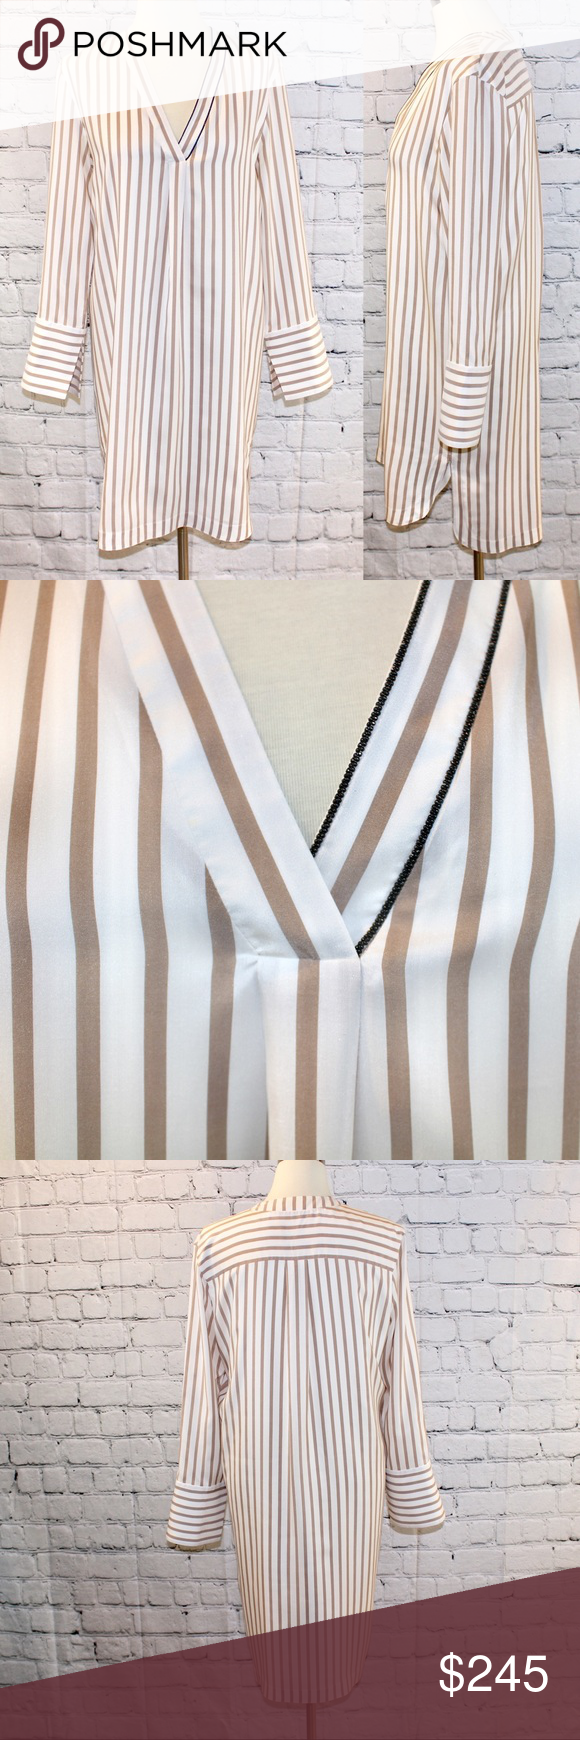 Brunello Cucinelli silk long tunic / nightshirt Monili beading, overall pristine condition, slight underarm staining (will post pics), has just been dry cleaned. Brunello Cucinelli Tops Tunics